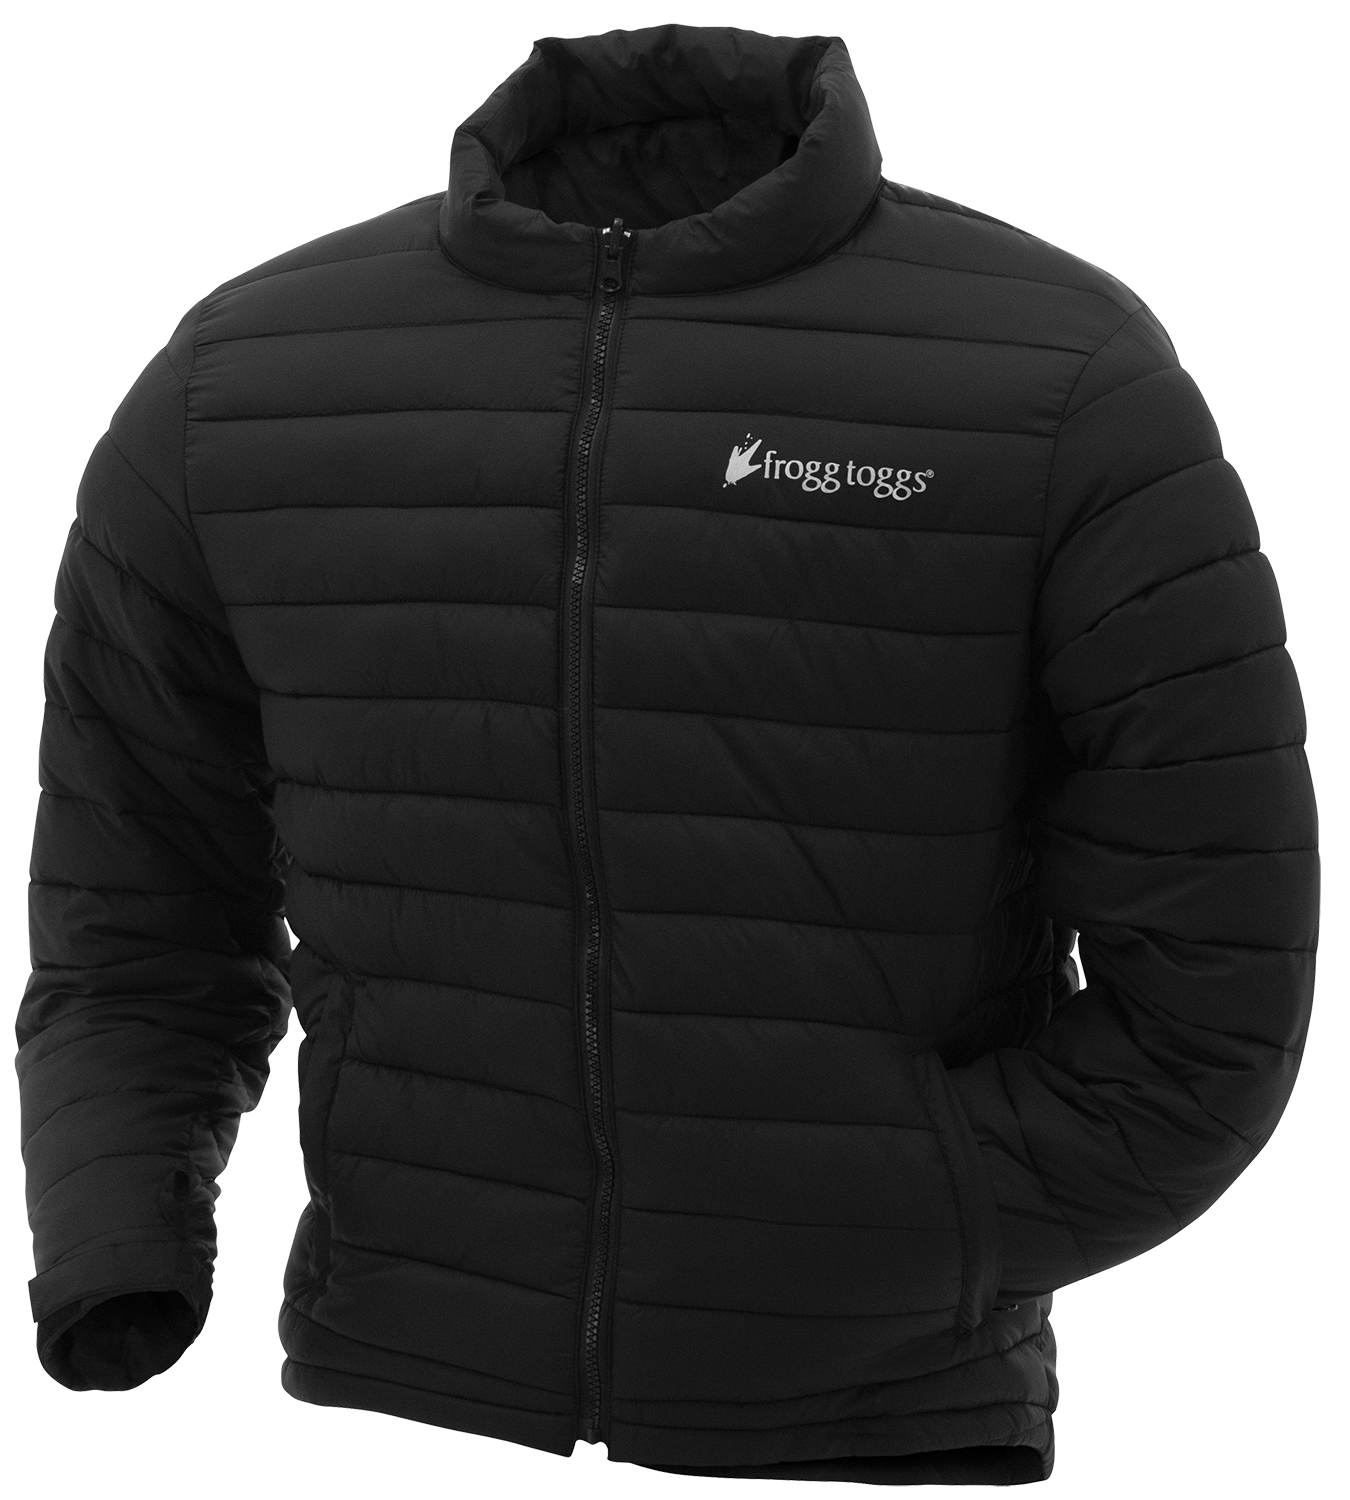 Giacca Co-Pilot Insulated Puff Jacket  - FROGG TOGGS PF63101-01MD